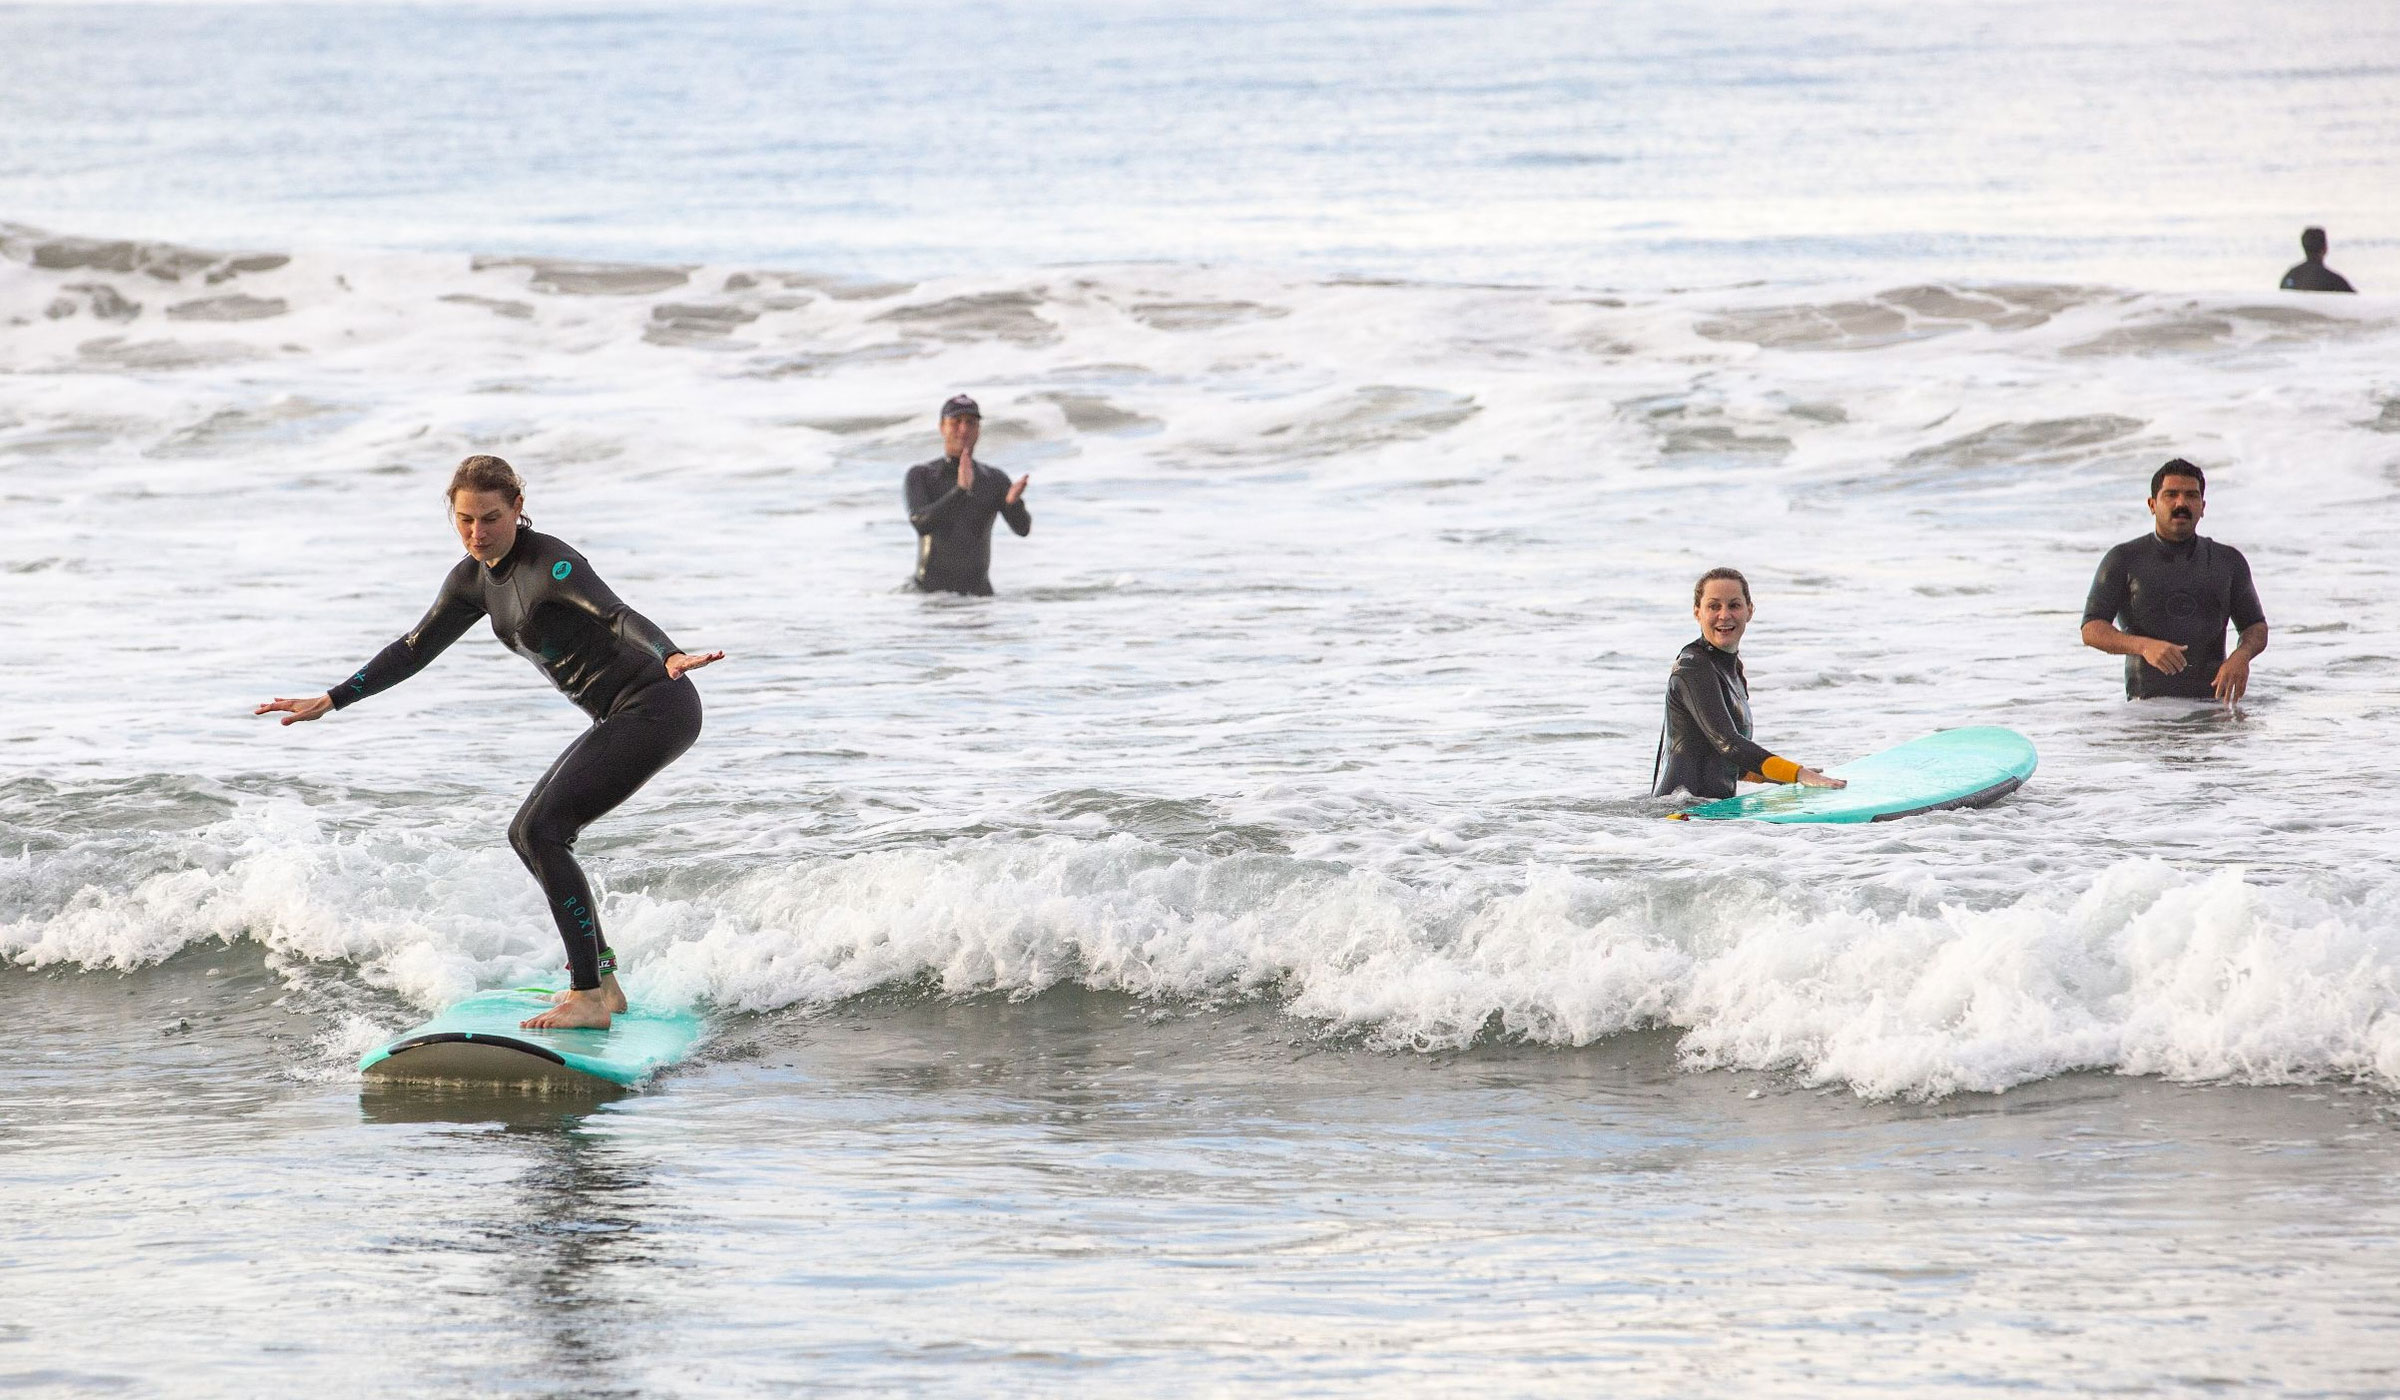 Surf Lesson - Private Solo Surf Camp 4 hours - Pacifica, Lindamar Beach (Bay Area) - Image 1